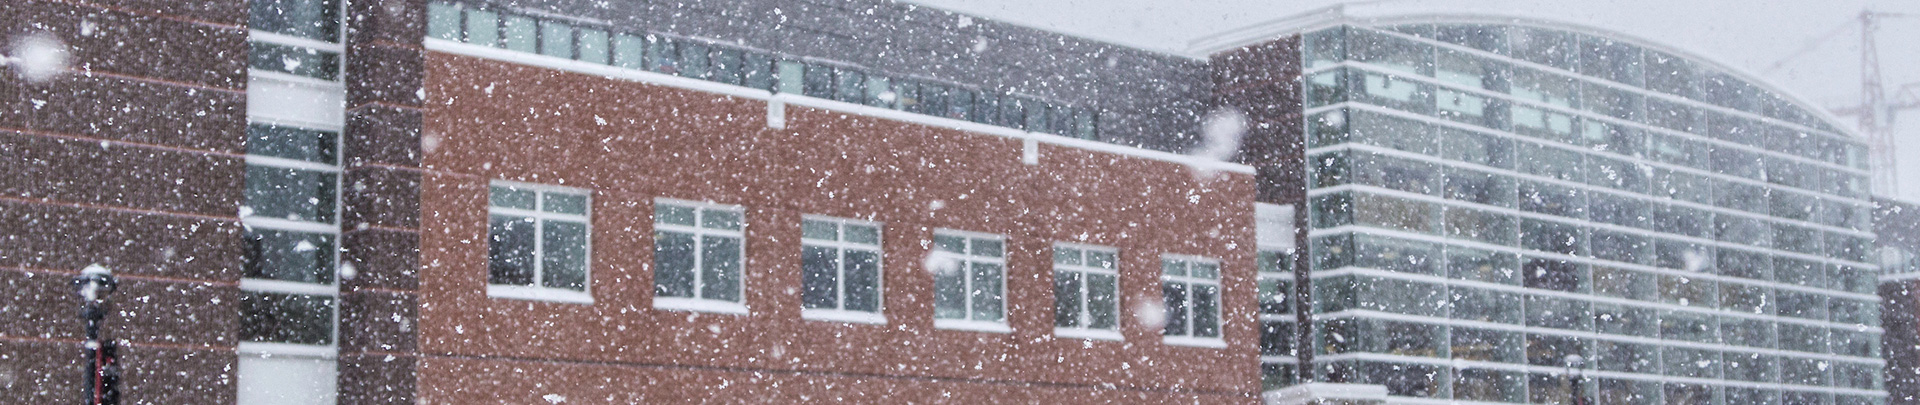 Snow falls in this picture of the front of Noyce Science Center.